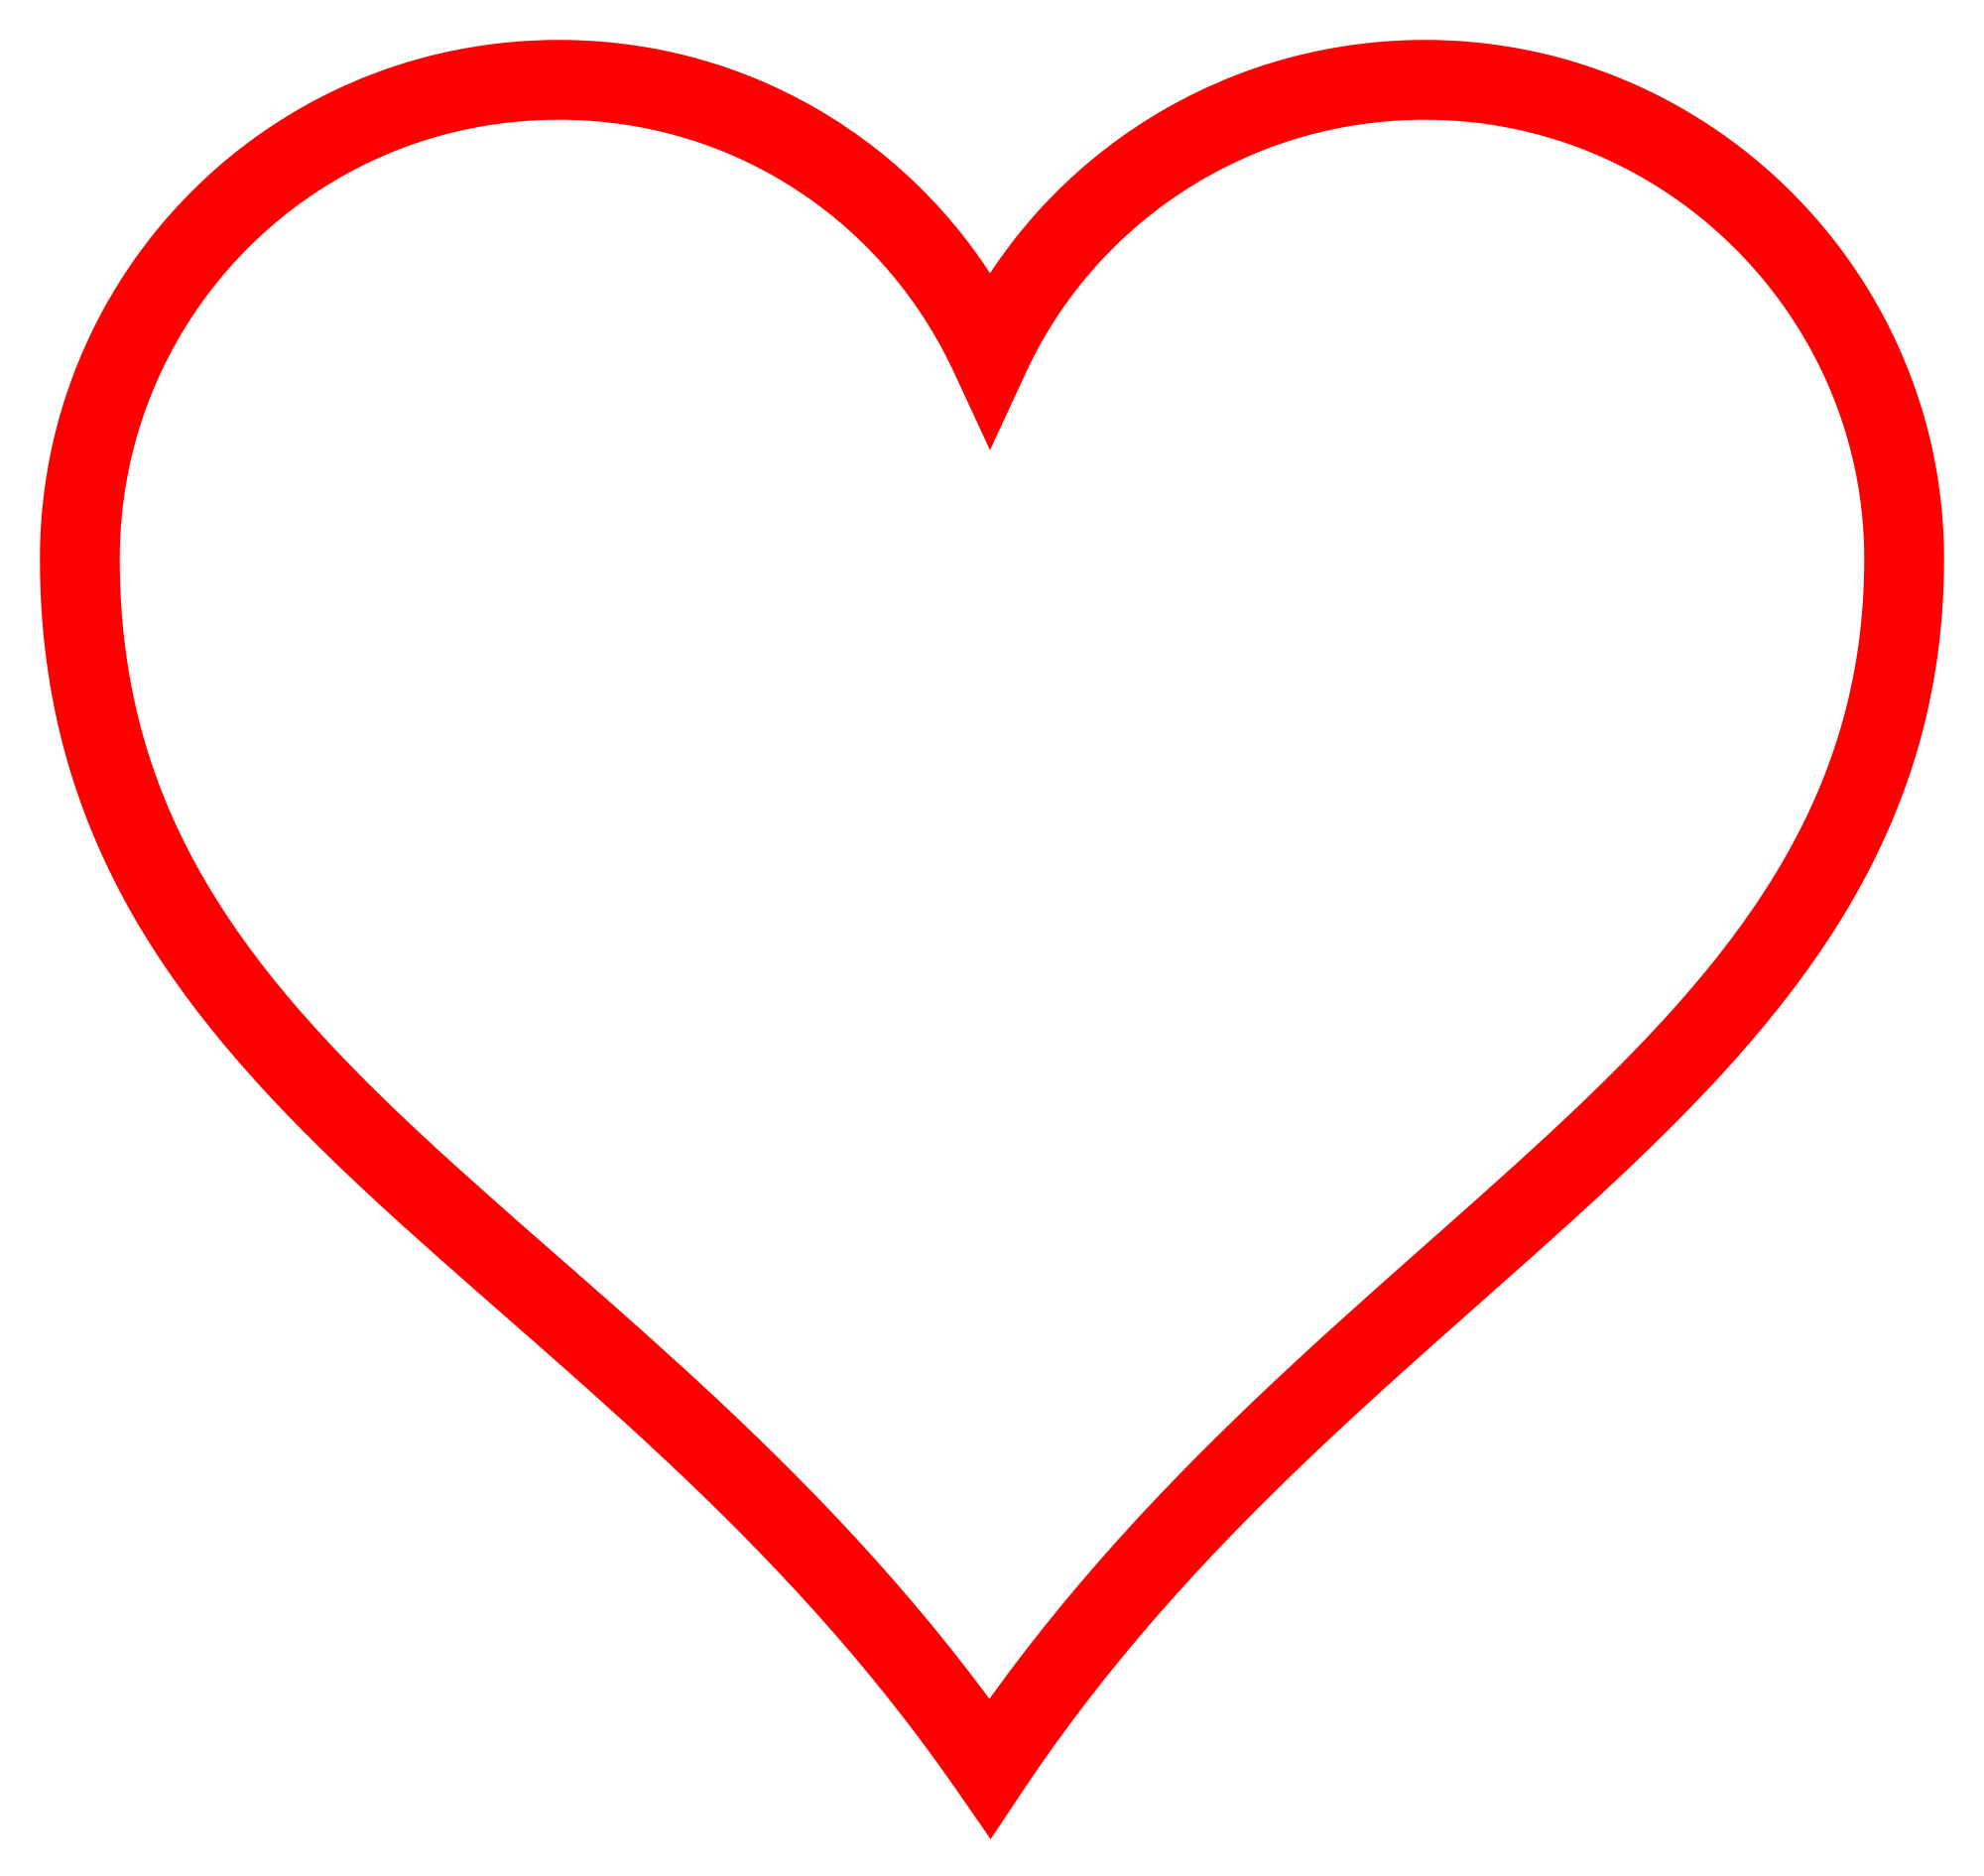 Heart png high definition. Love and hate strong